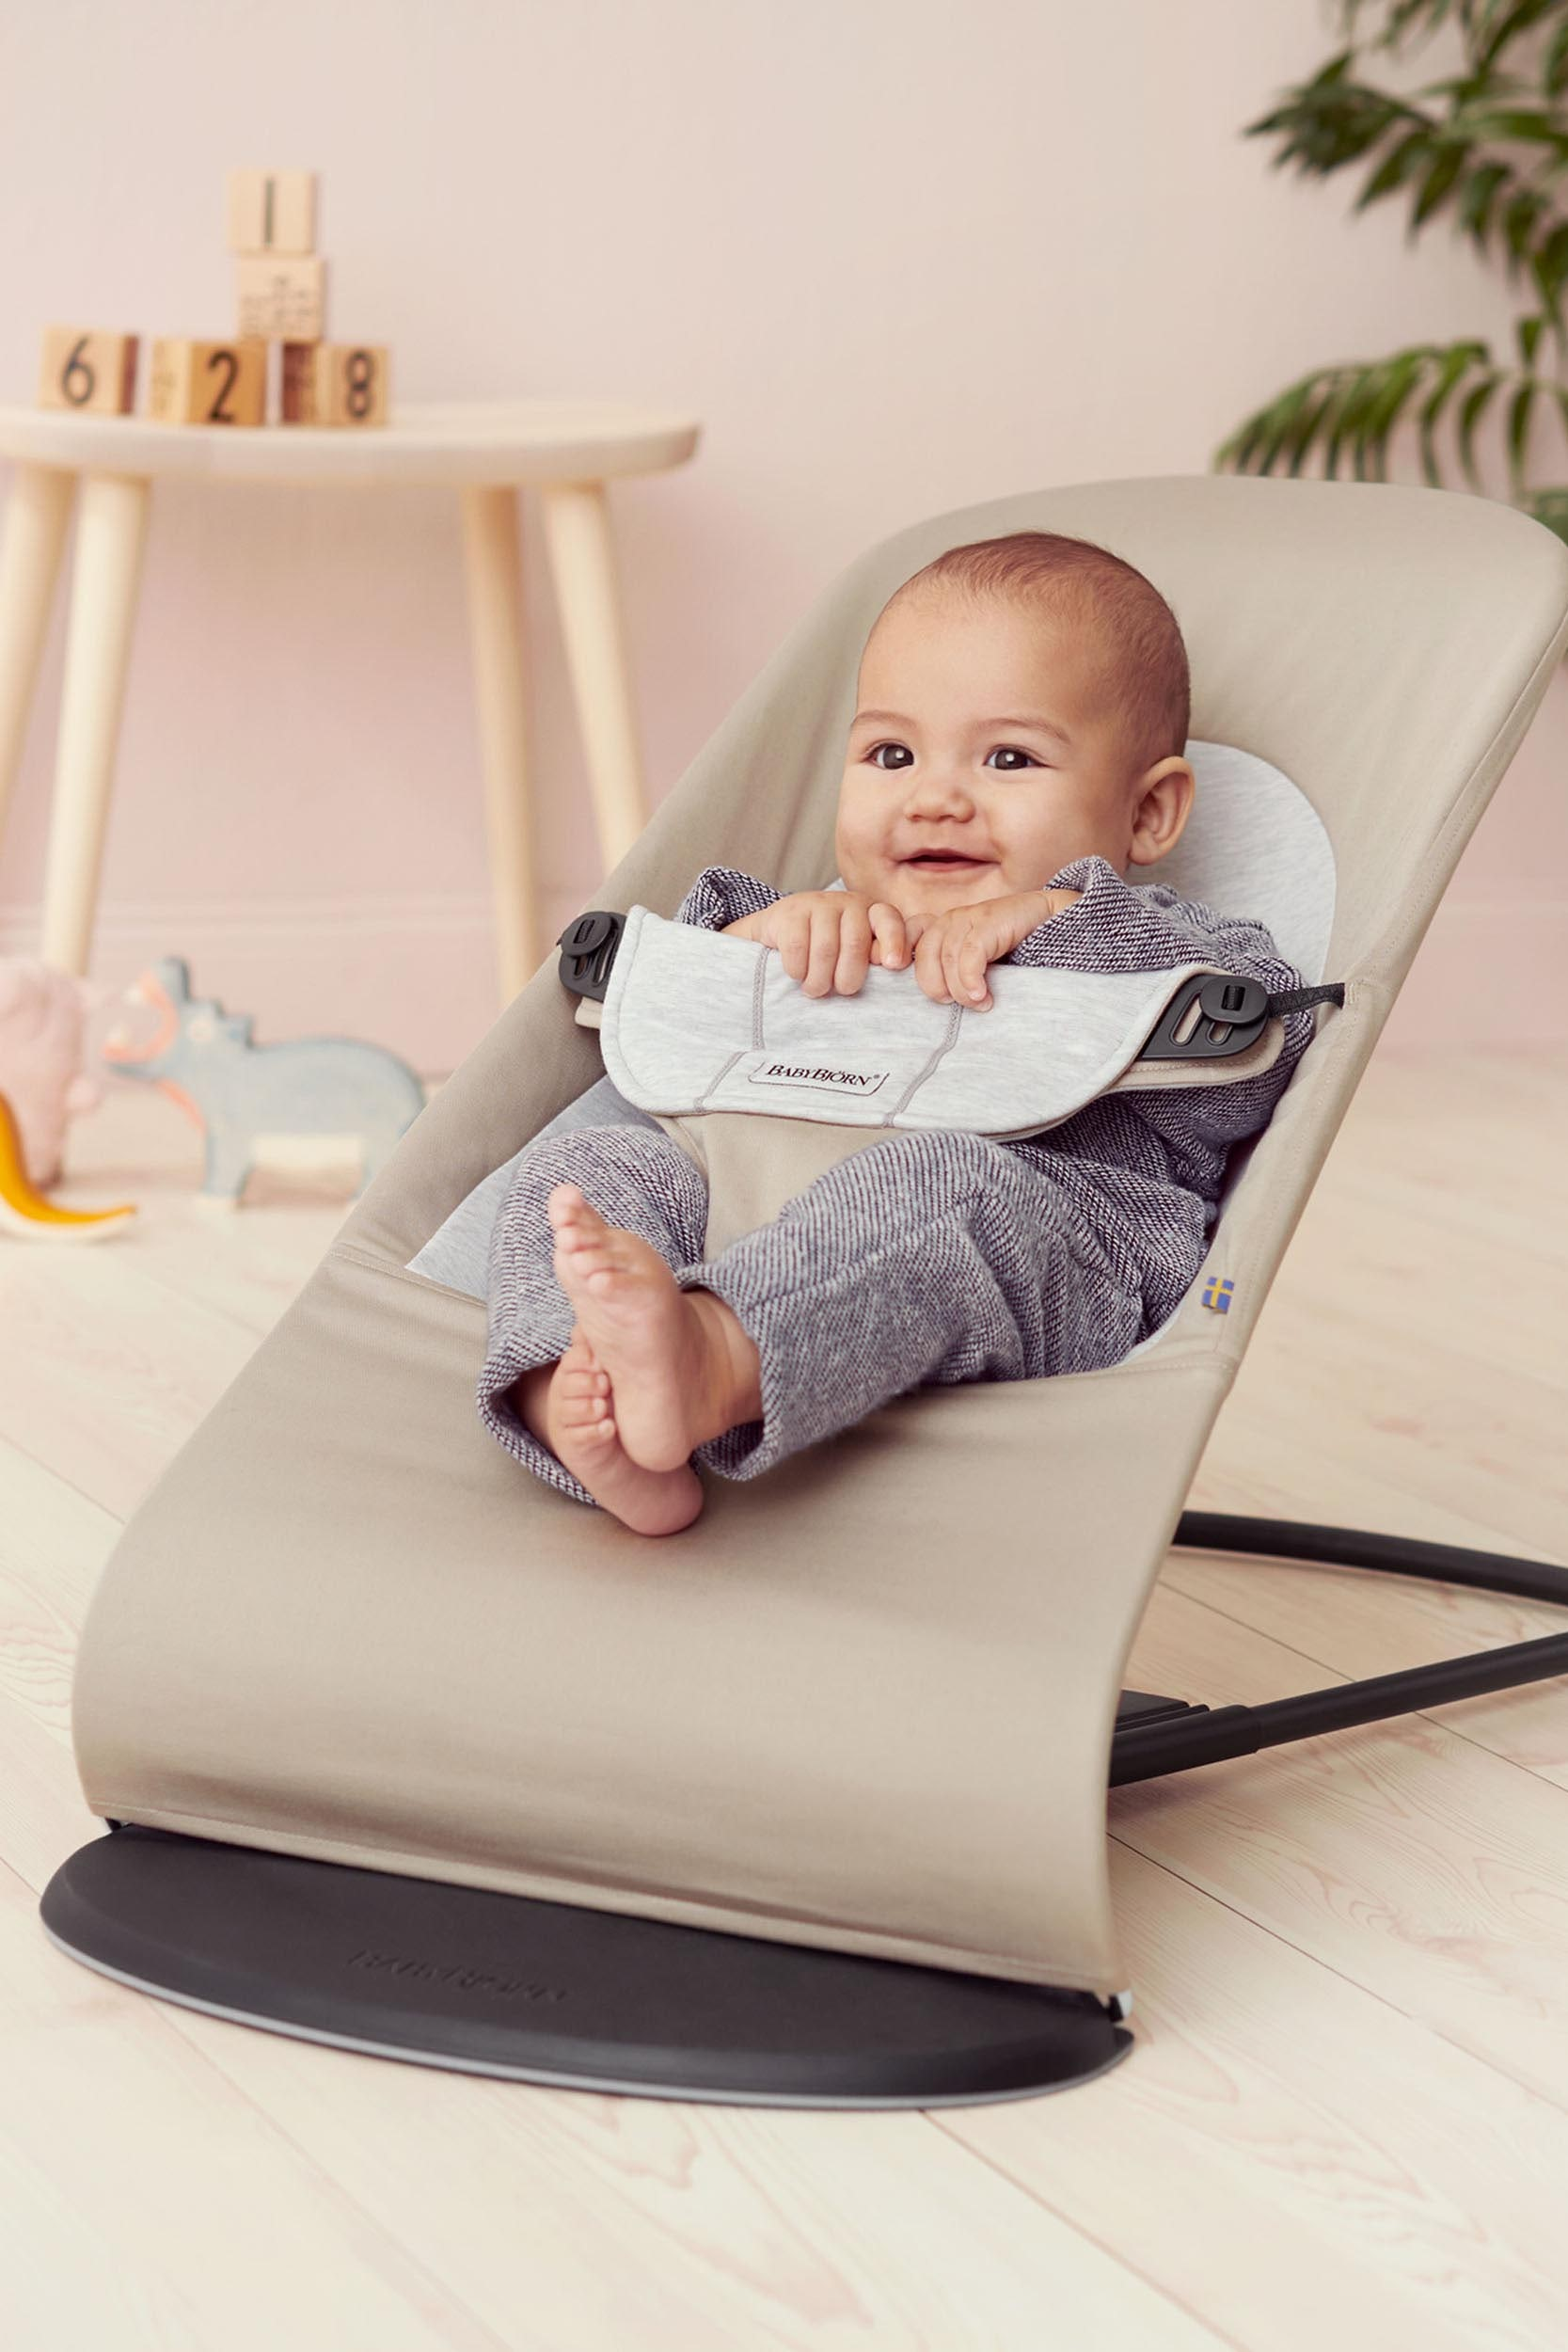 Infant Learning Chair Balance Soft An Ergonomic Baby Bouncer BabybjÖrn